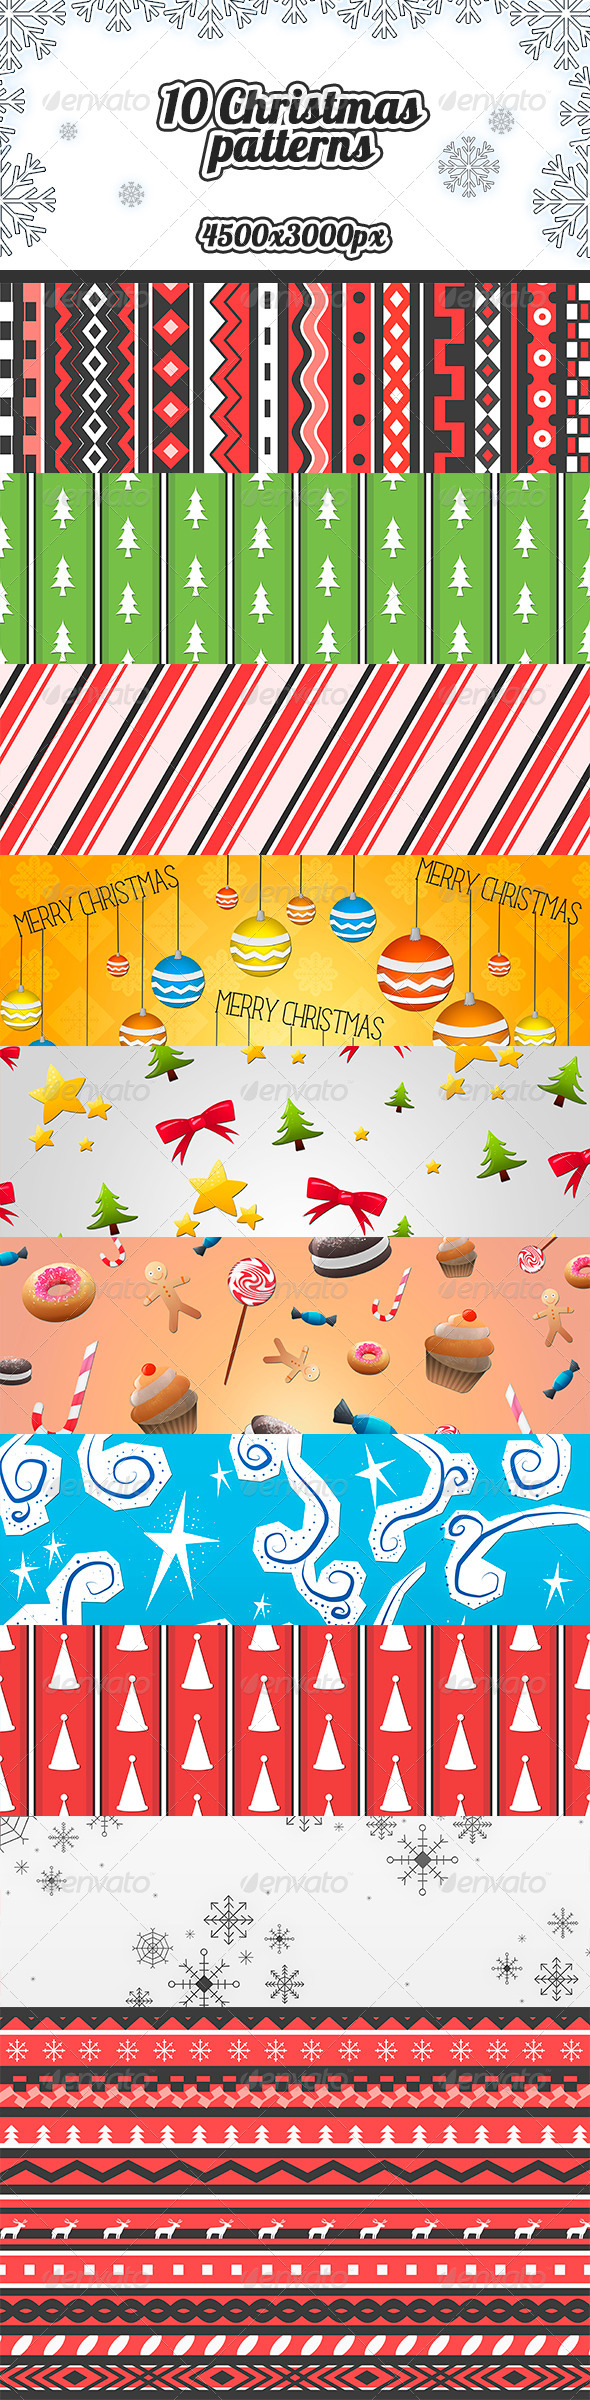 GraphicRiver 10 Christmas Patterns 6407493